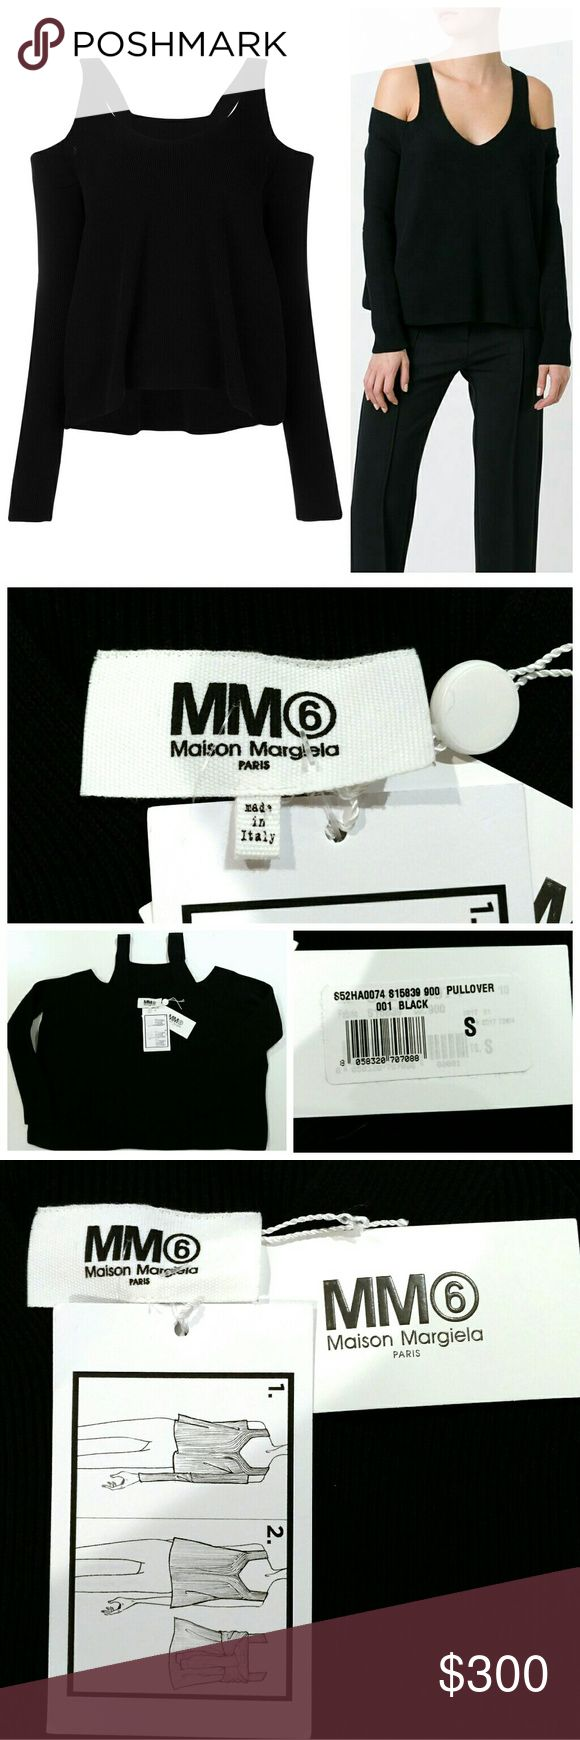 SALE💥MM6 Maison Margiela Cold Shoulder Sweater Cool girl chic! 💥 Rare + sold out MM6 Pullover Cold Off Shoulder -2 ways to wear- sweater in Black, size Small.  Made in Italy!  Retails for $480 + tax. Current season/SOLD OUT in this size.  No Trades ✋ No Lowballers. Maison Margiela Sweaters V-Necks